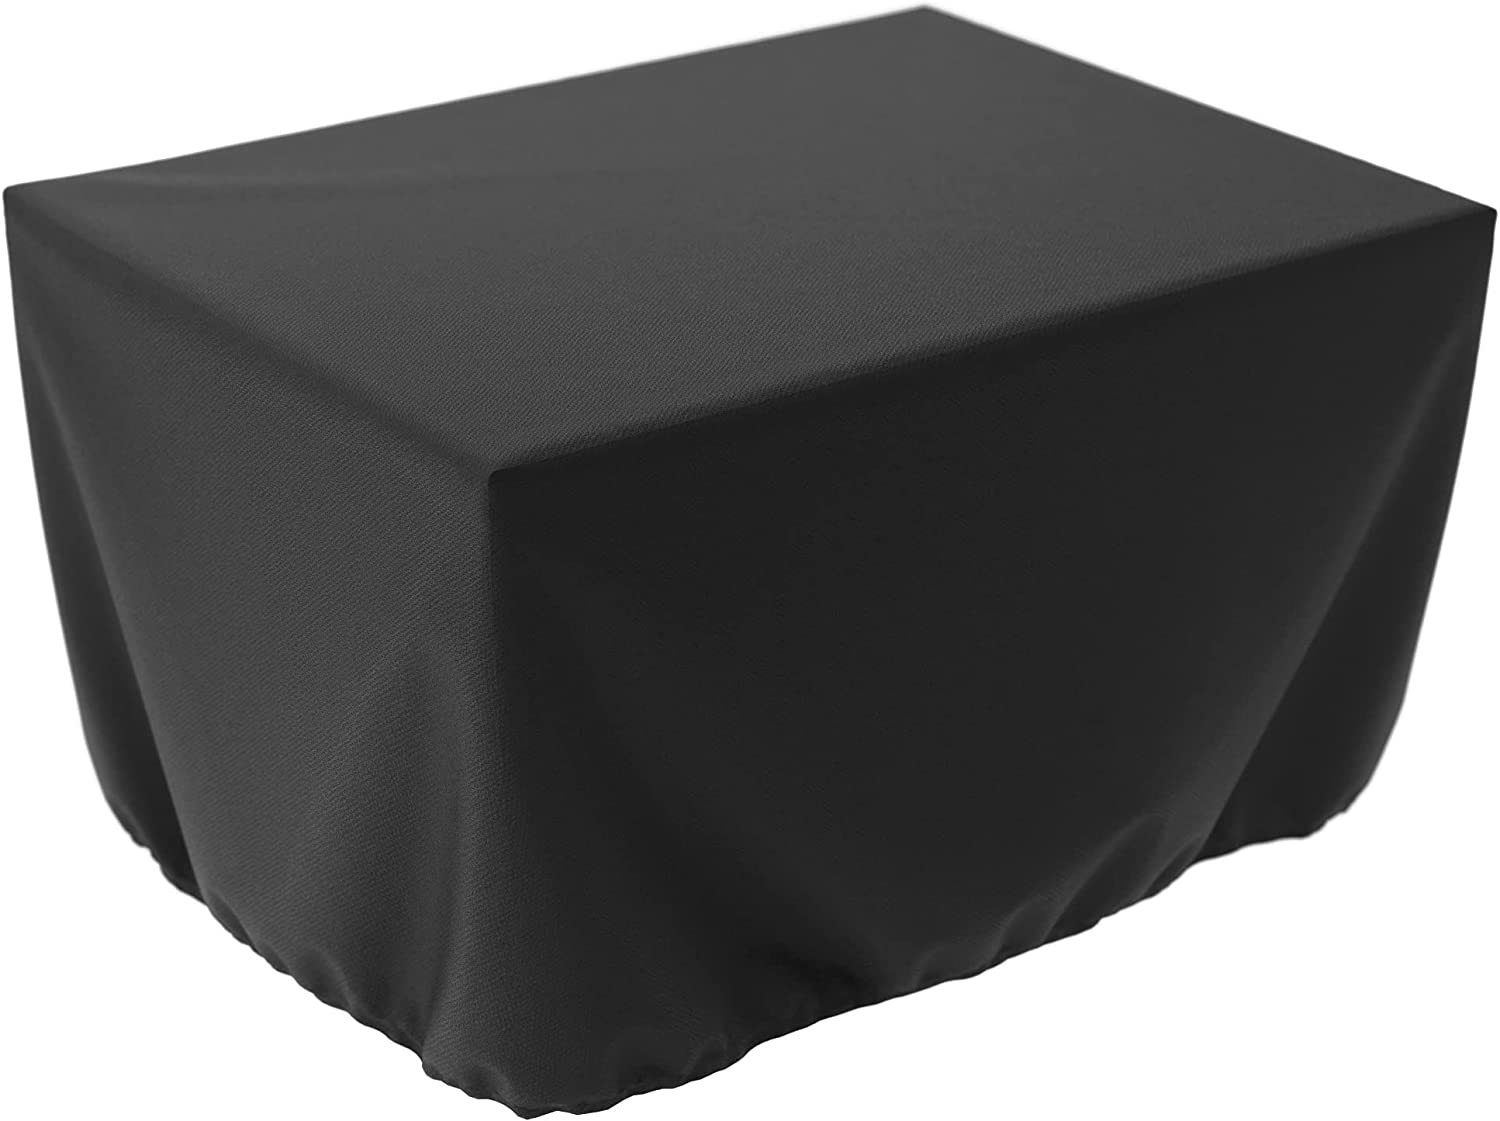 SHINESTAR Popular shop is the lowest price challenge Fire Alternative dealer Table Cover for Outland 401 Pr Outdoor 403 Living